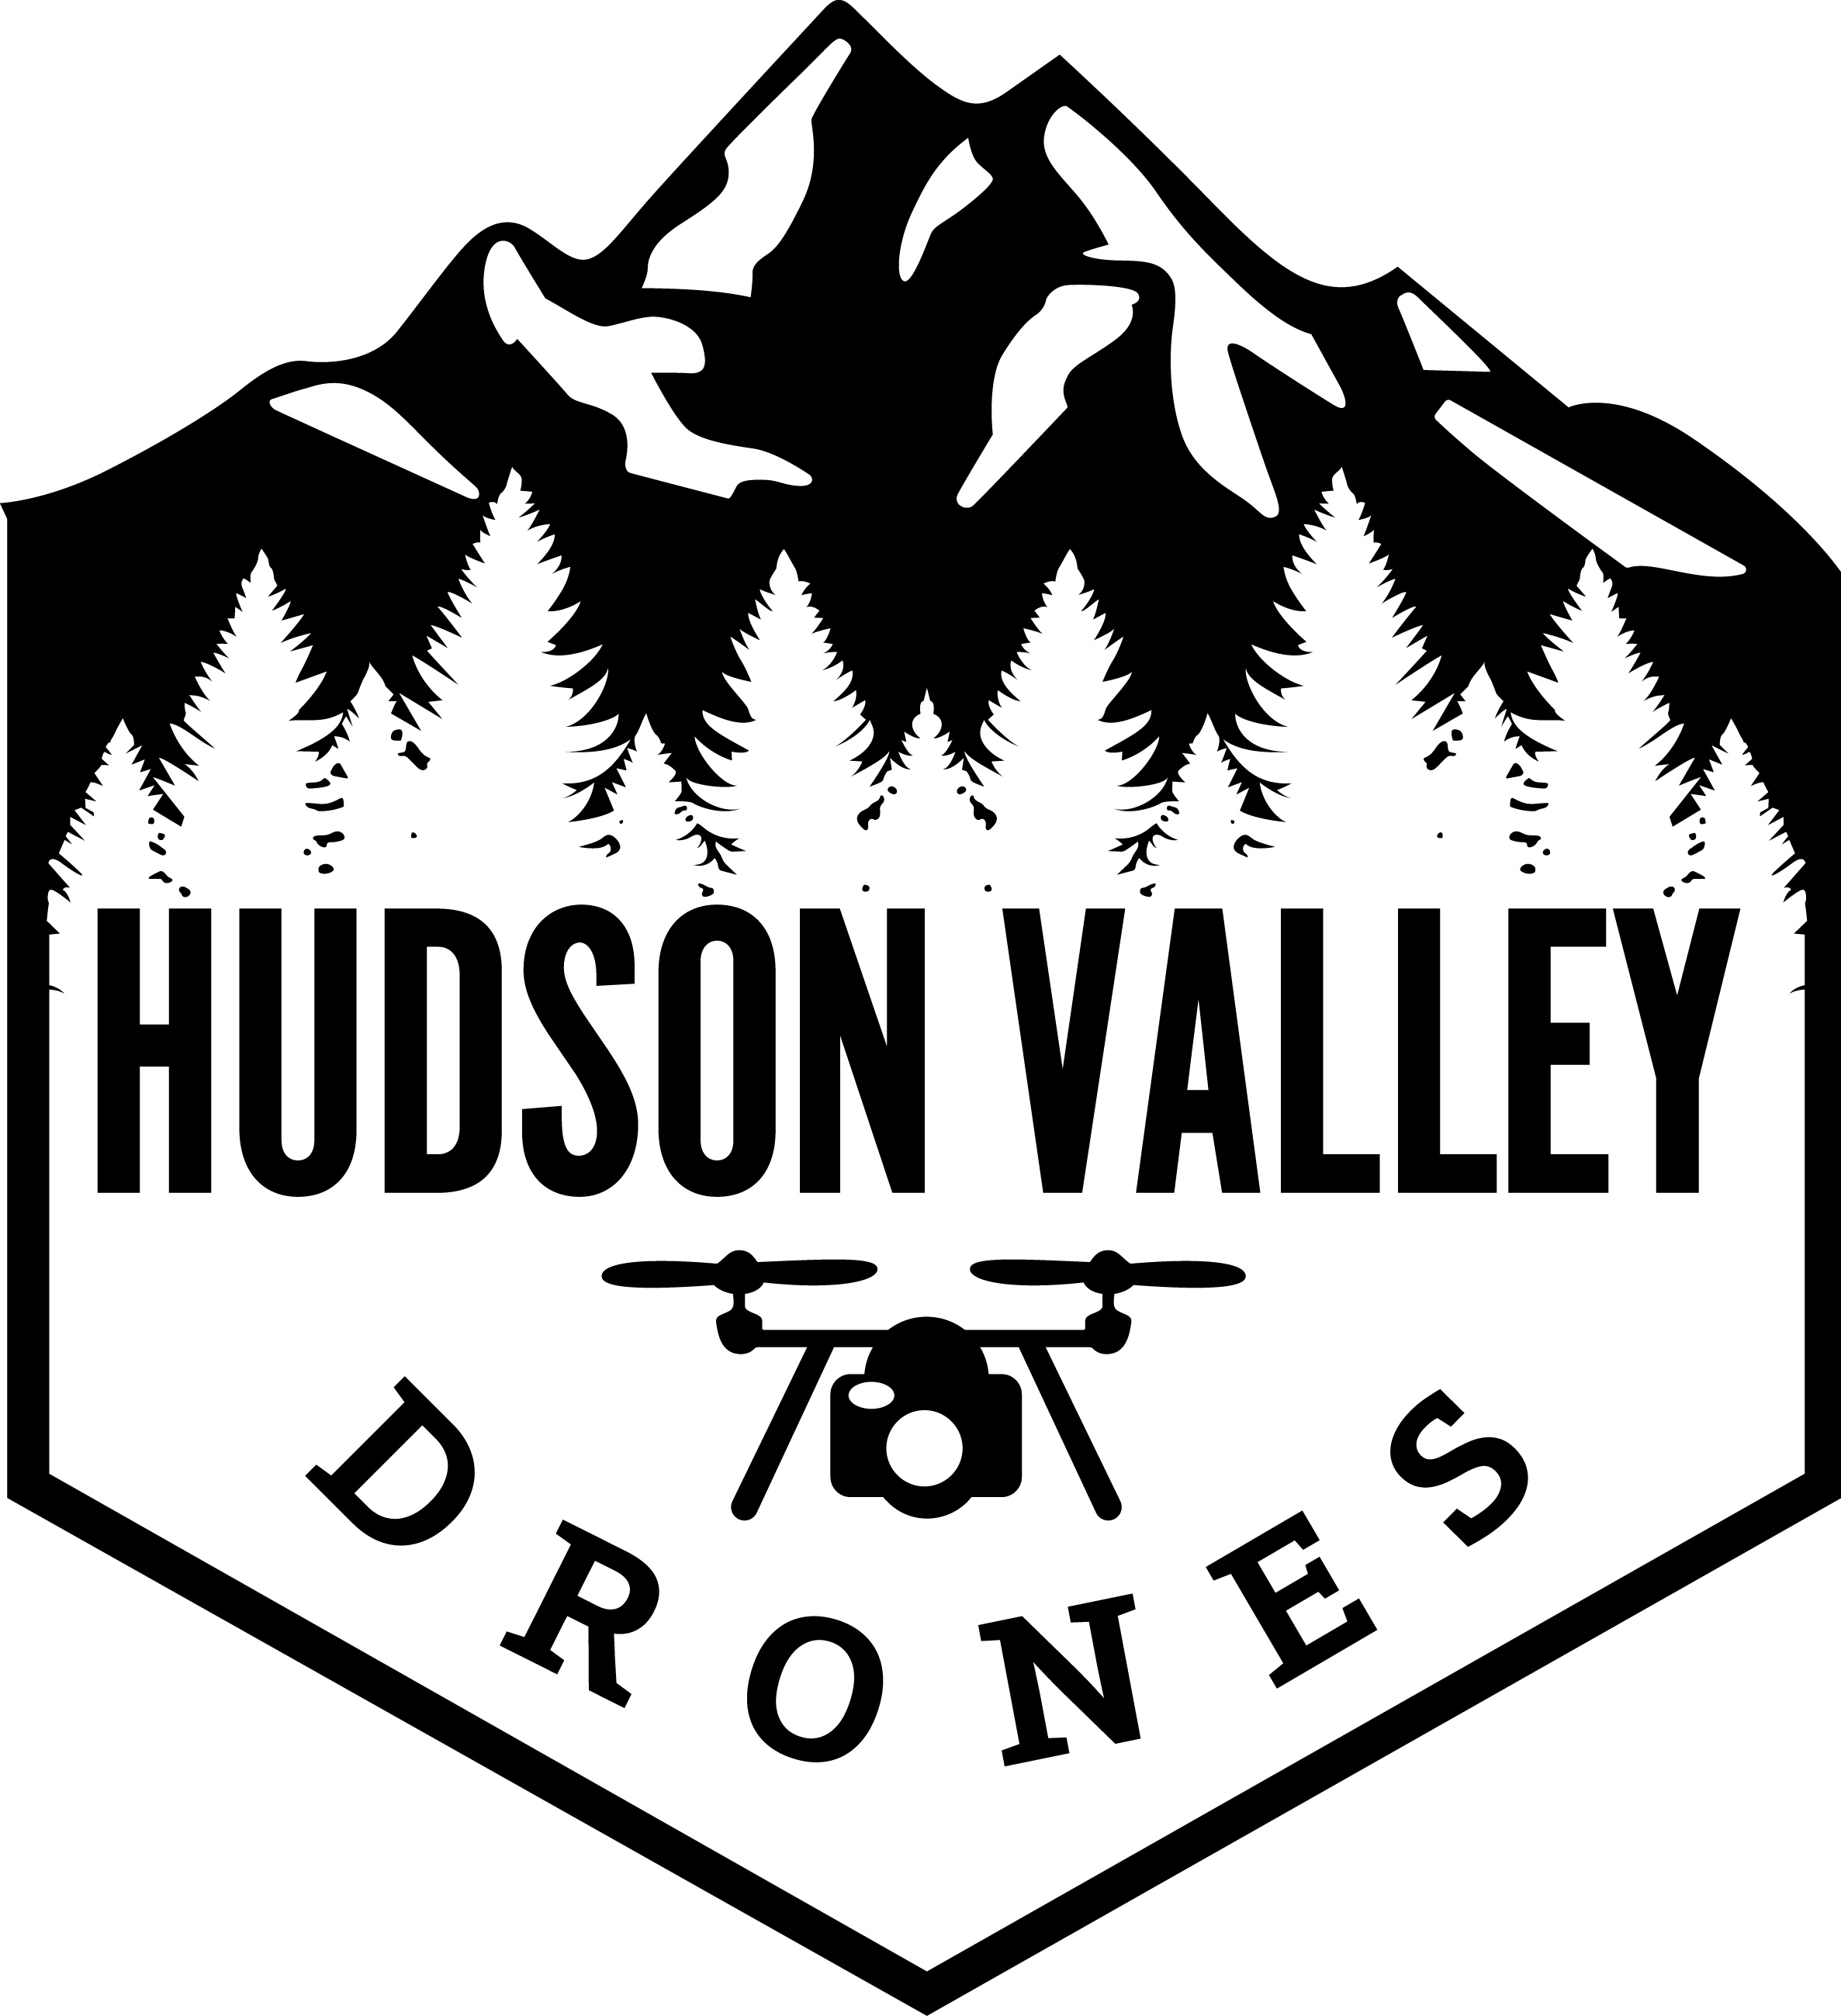 Hudson Valley Drones - New York's Premier Aerial Services Provider